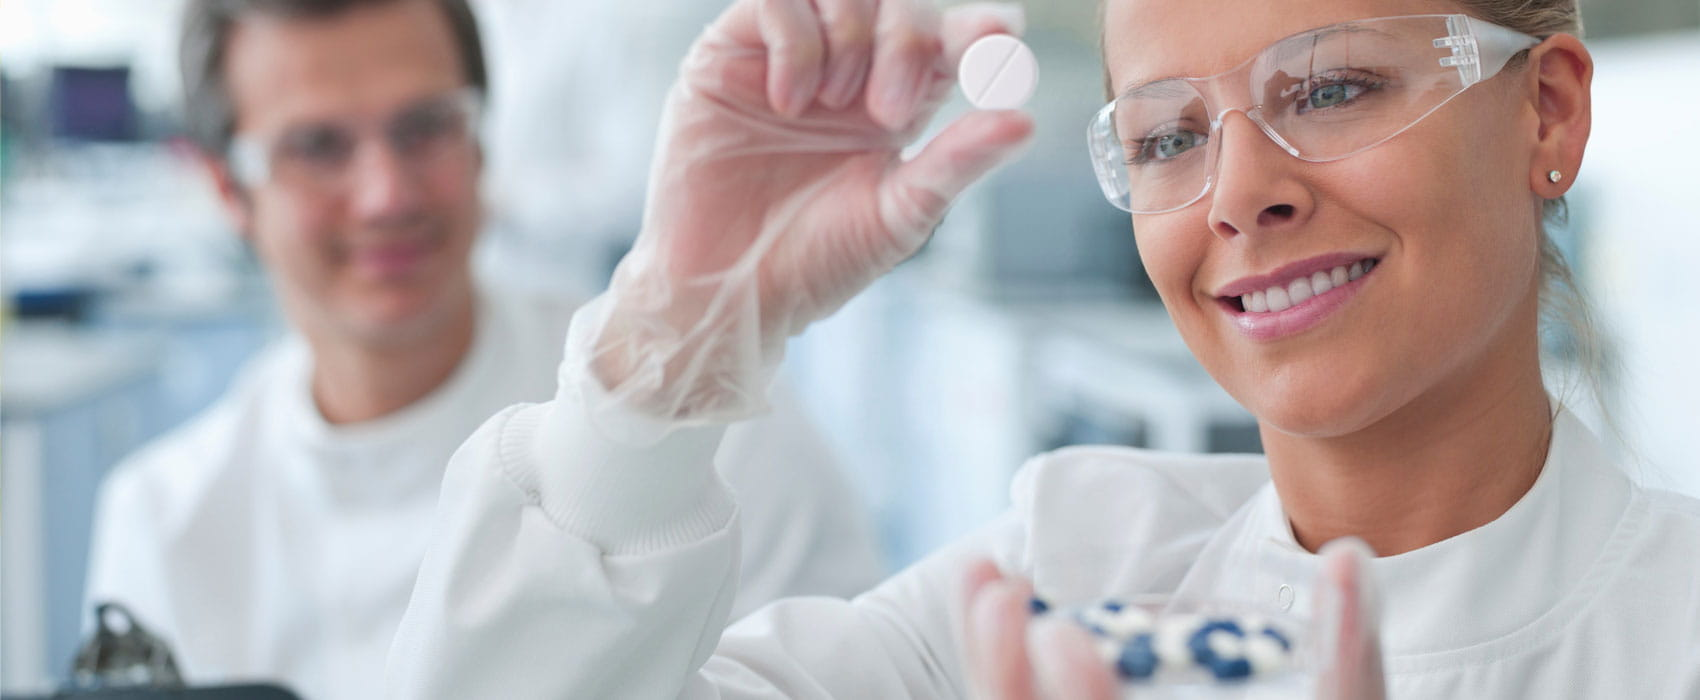 Plant-based excipients and ingredients for pharmaceutical and